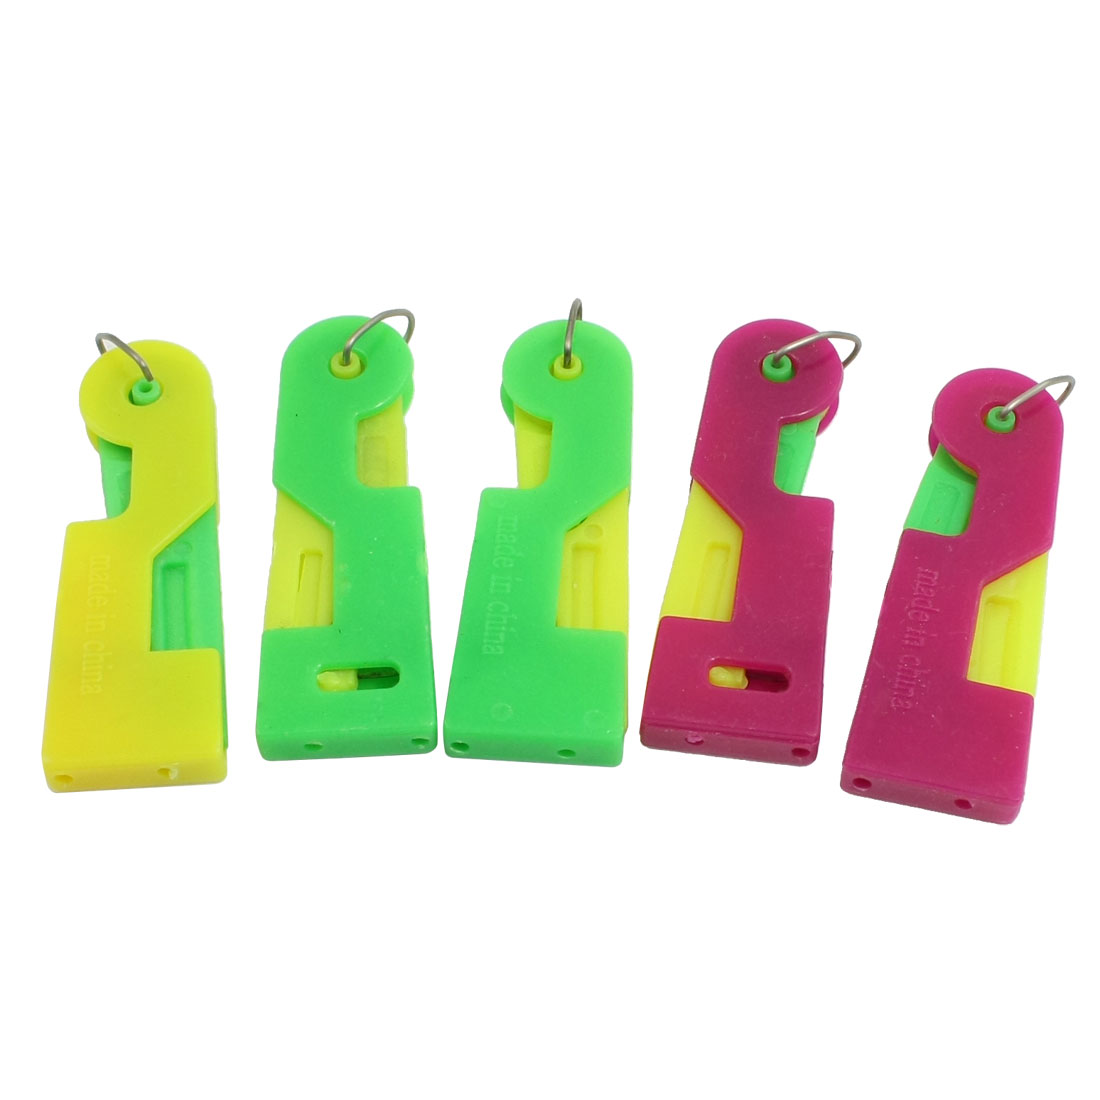 Fuchsia Green Yellow Plastic Housing Sewing Needle Threader 5 in 1